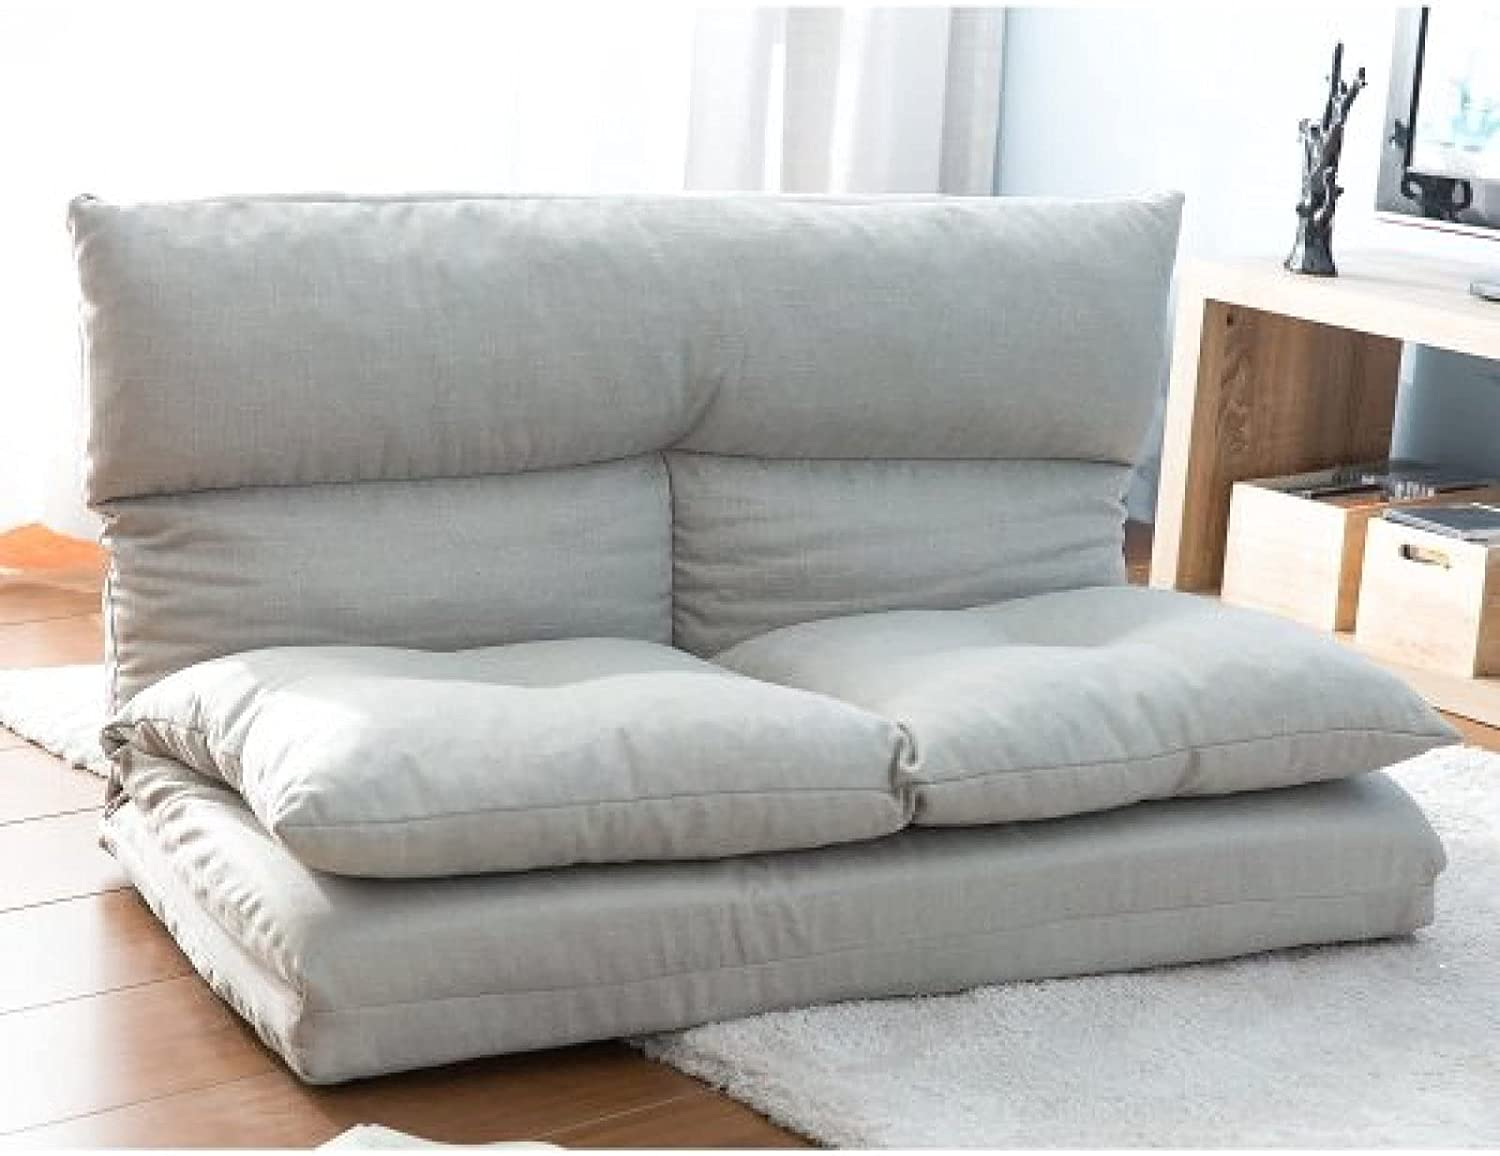 Fabric Folding New sales Chaise Lounge Floor Gray Sofa Year-end annual account